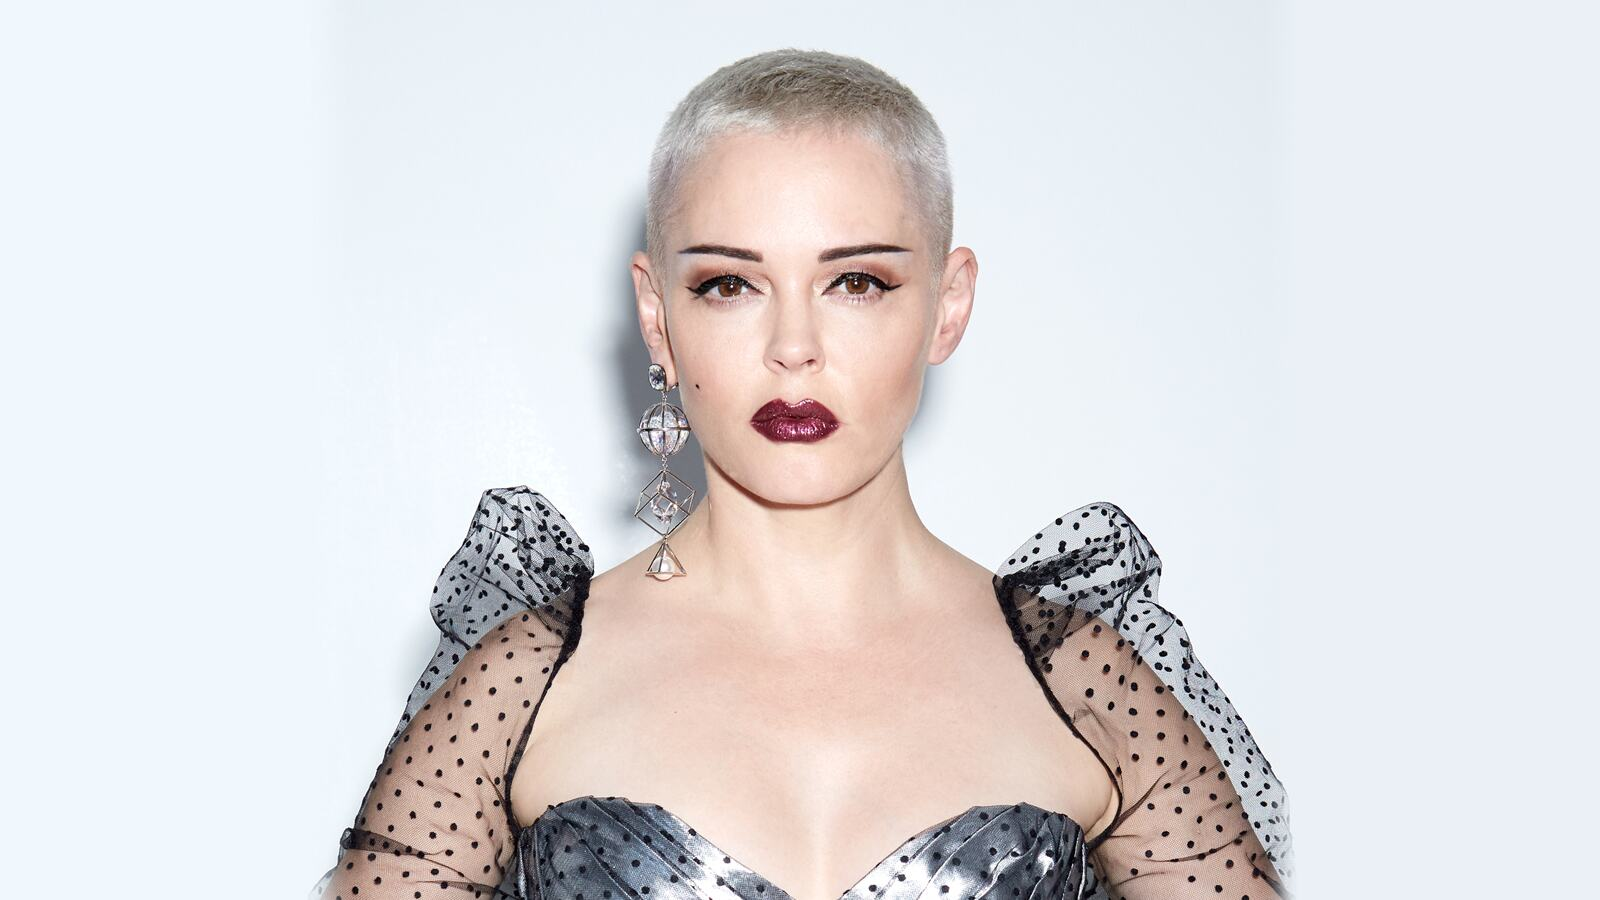 Rose McGowan, author and activist